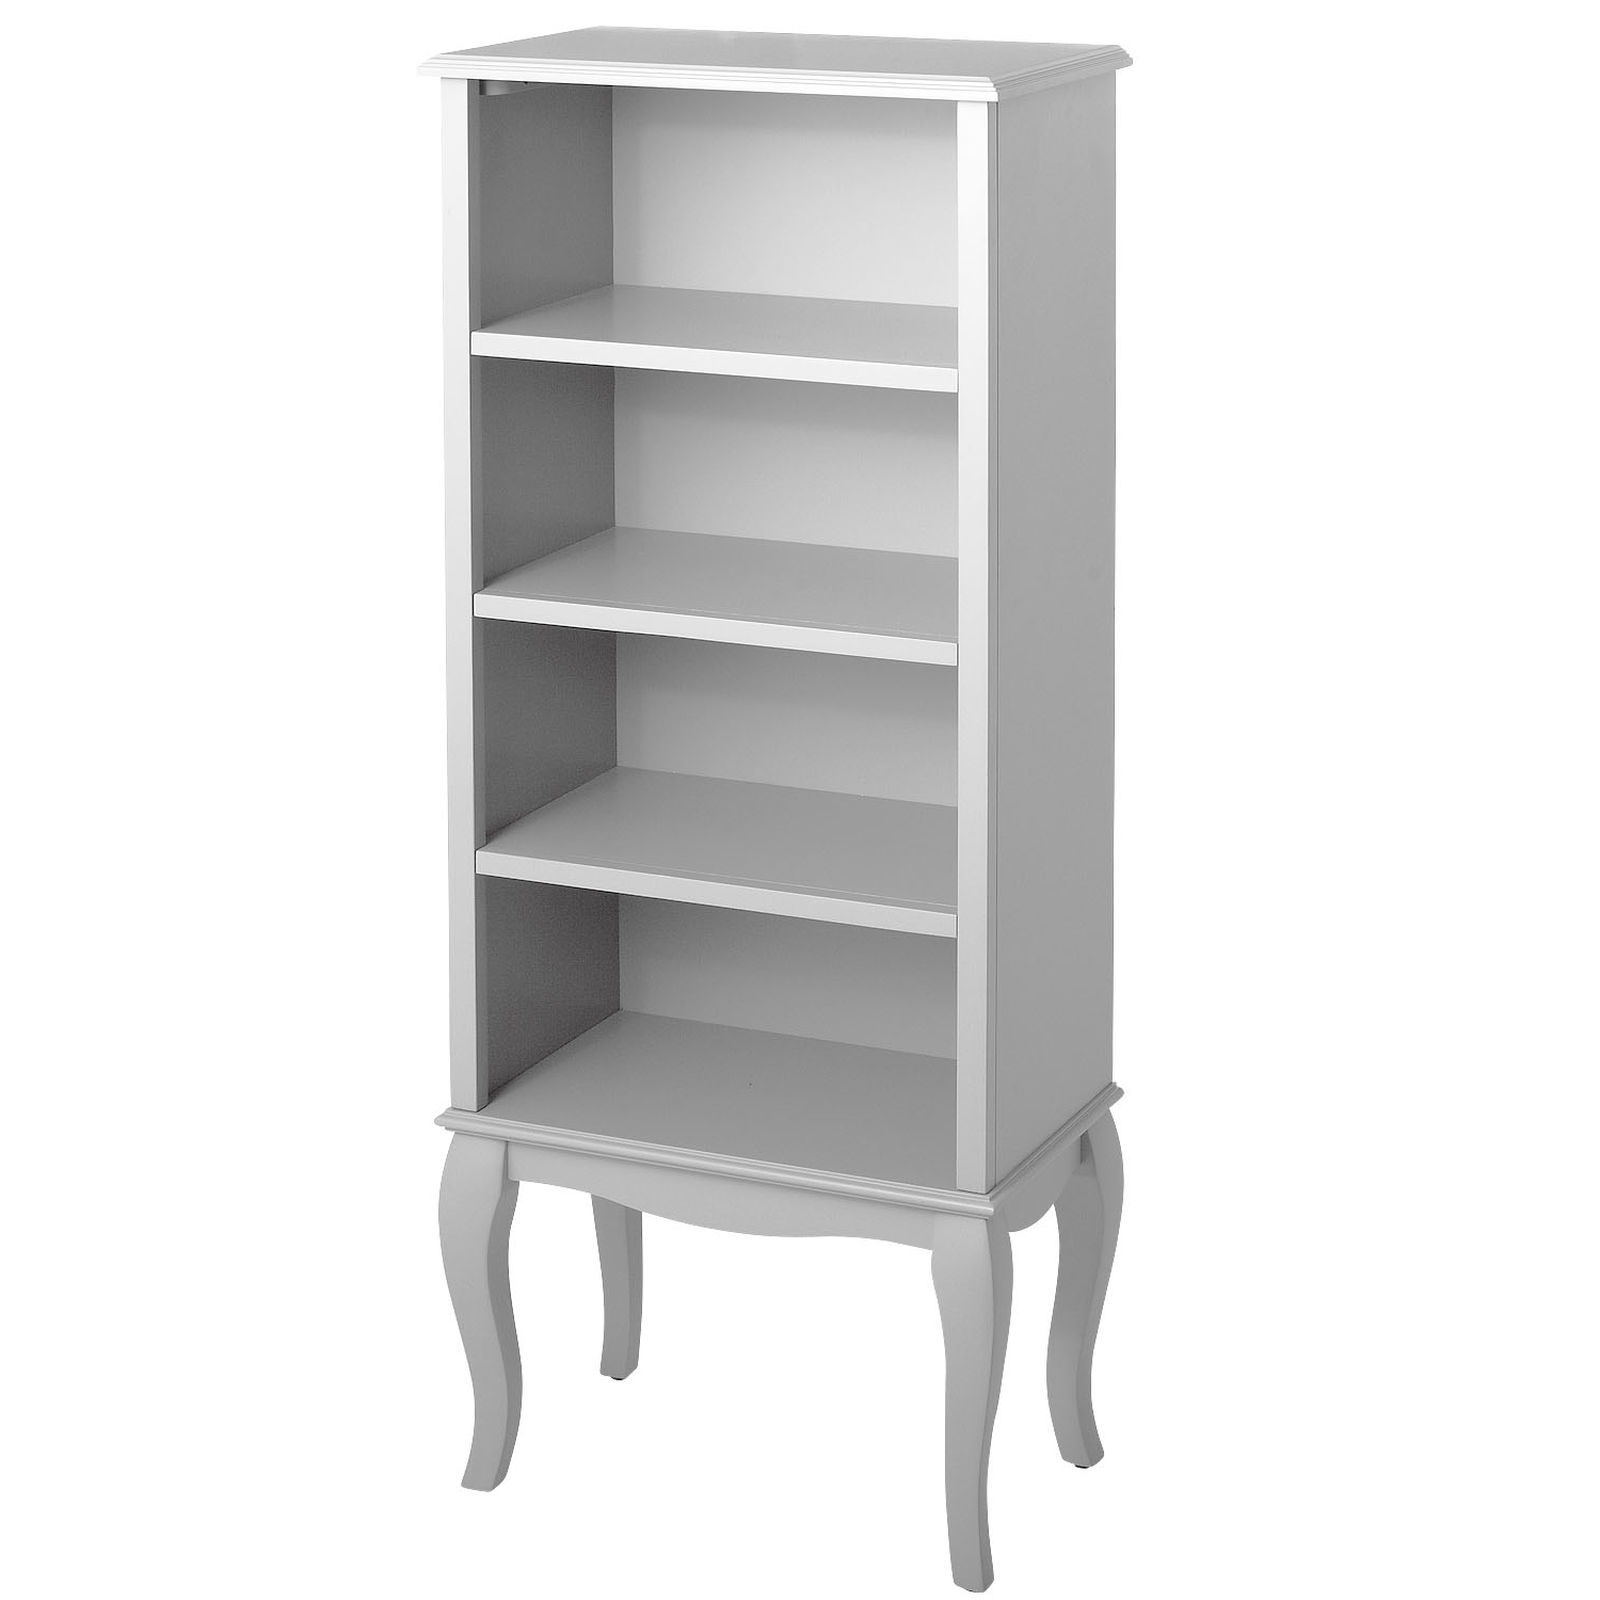 Widely Used 24 Inch Wide Bookcases Intended For Bookcases White Ikea Wide Bookcase Inch With Glass Doors40 In (View 15 of 15)